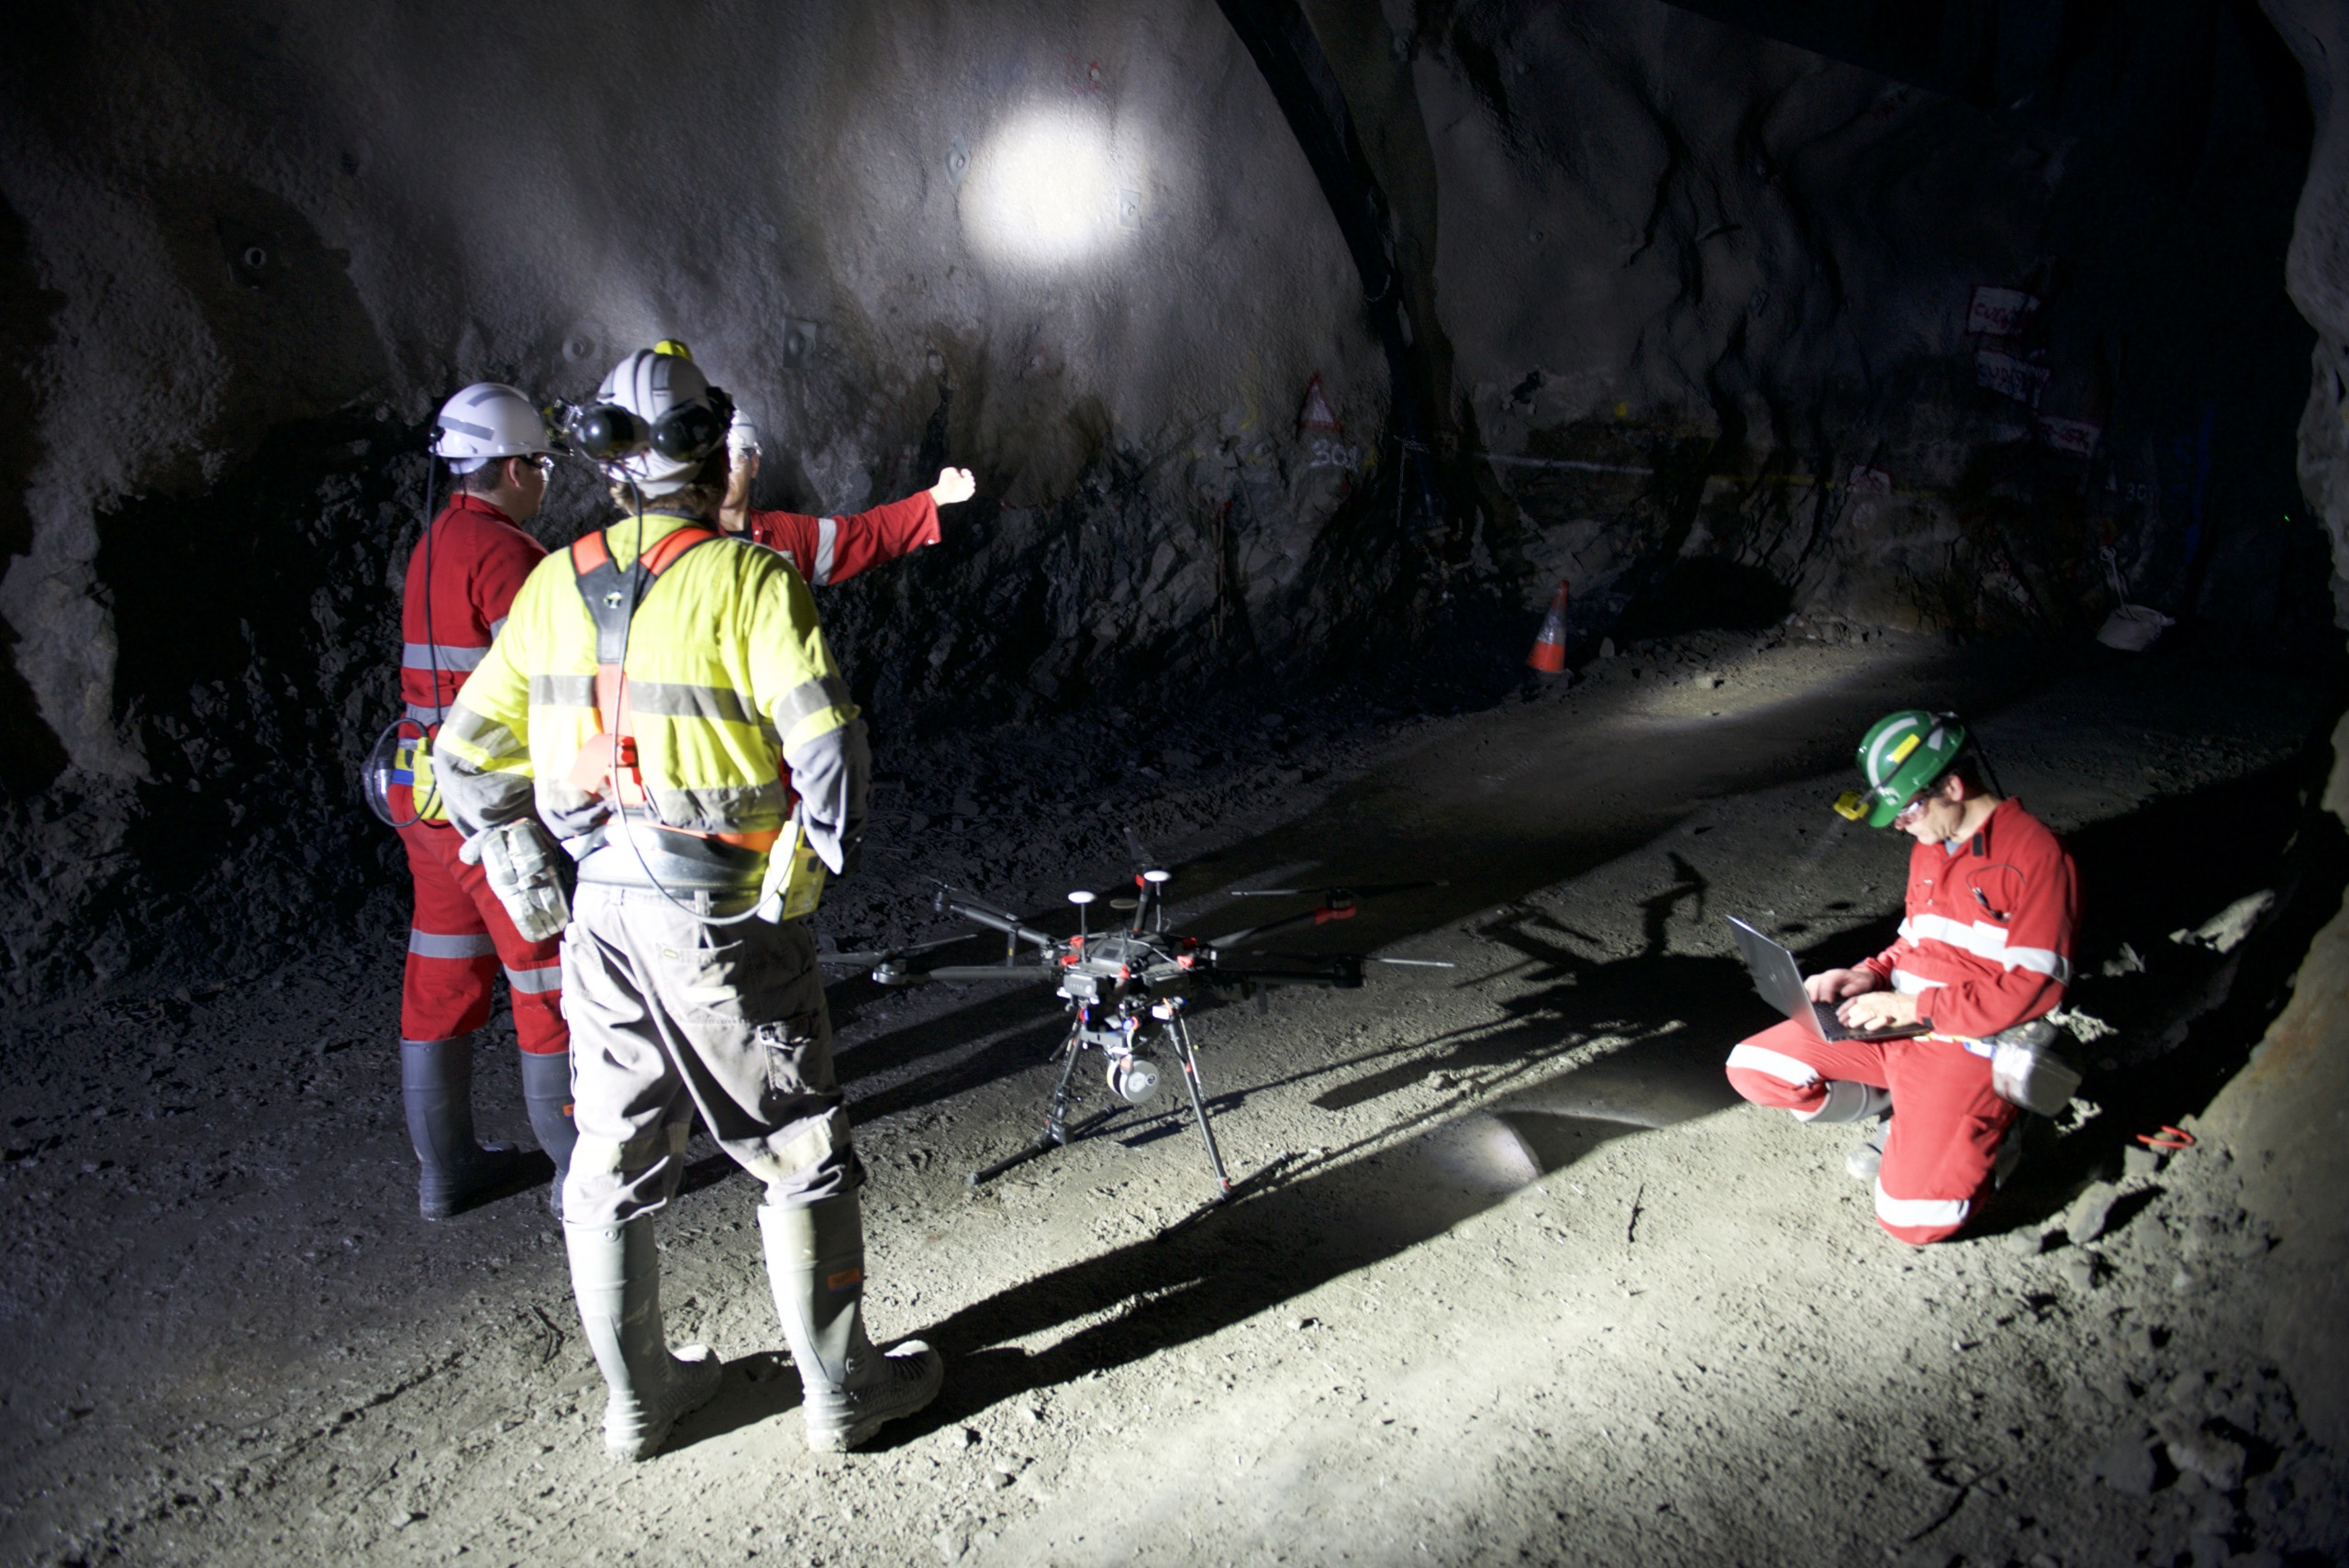 People underground setting up Emesents Hovermap to explore an underground mine.